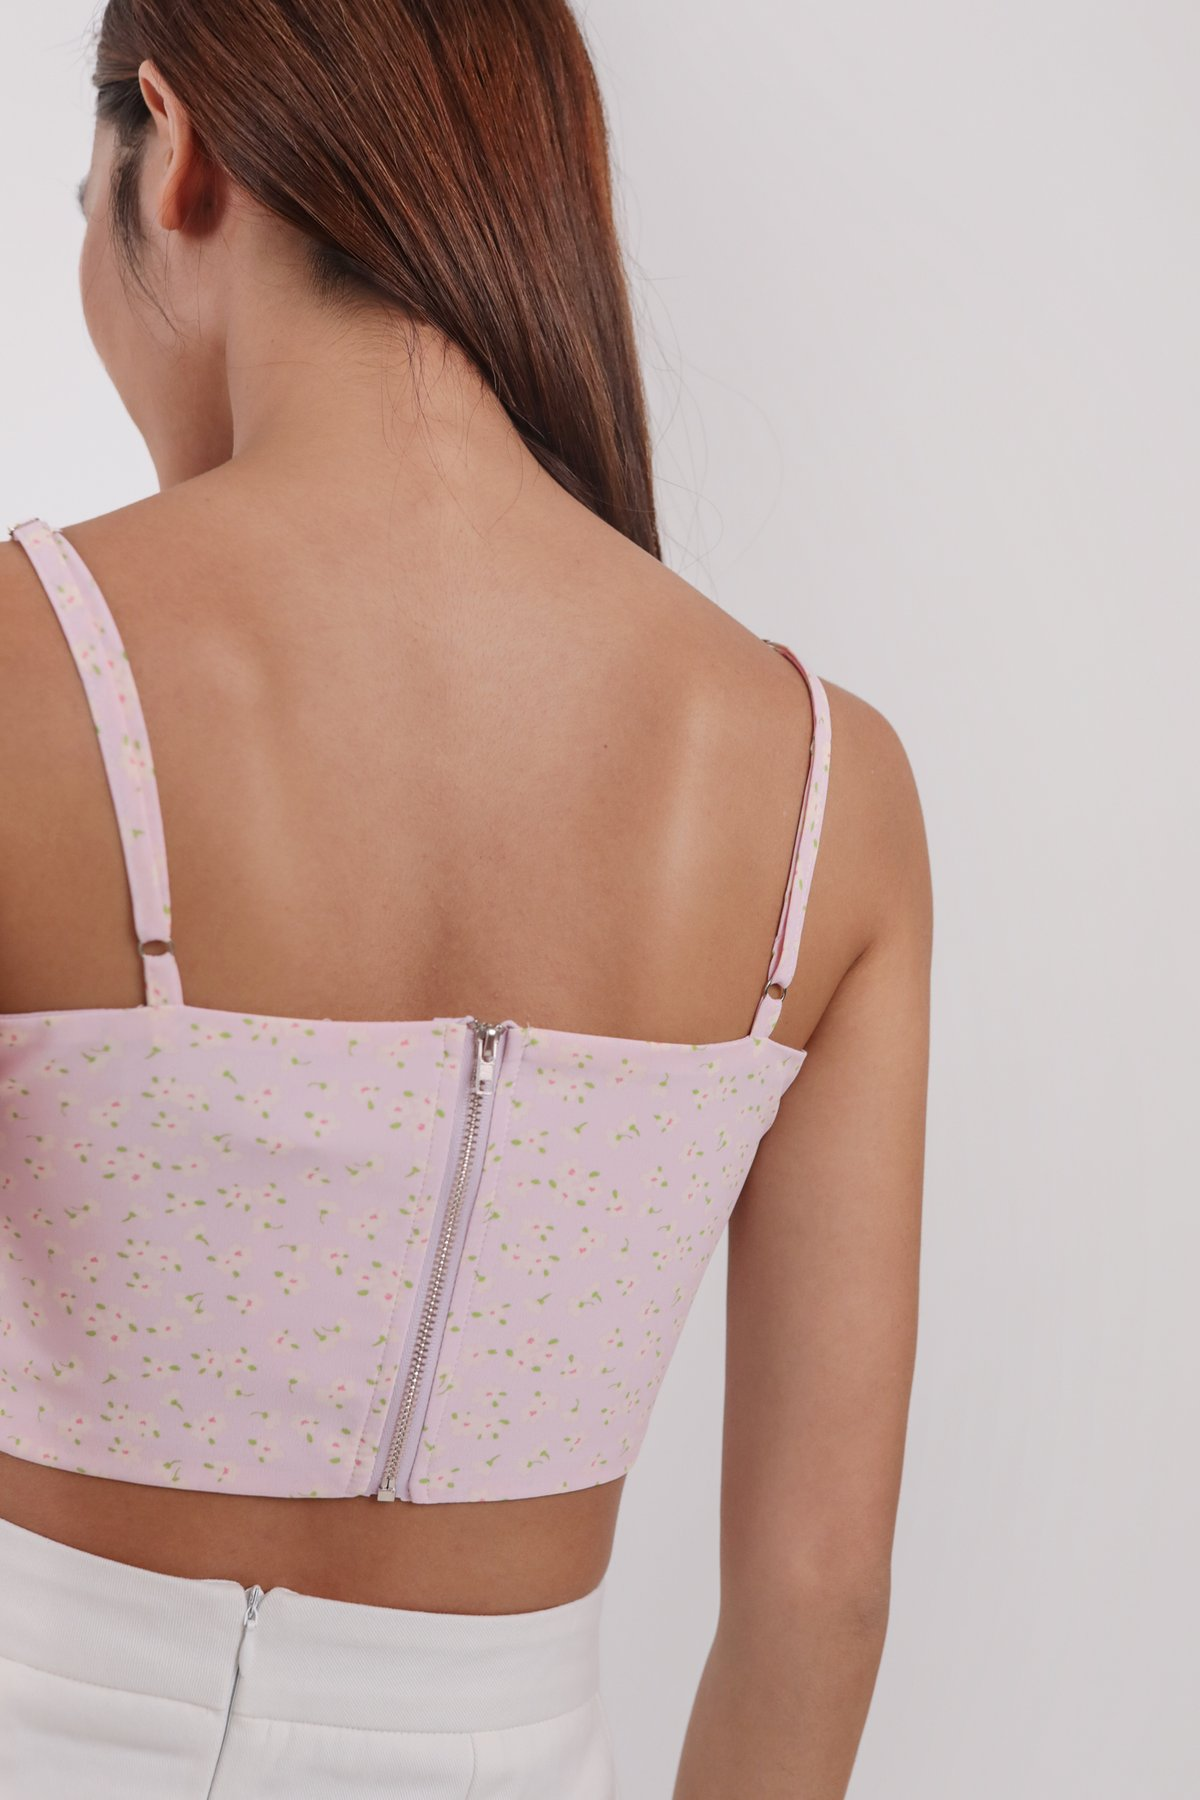 Deon Cropped Top (Pink Daisy)